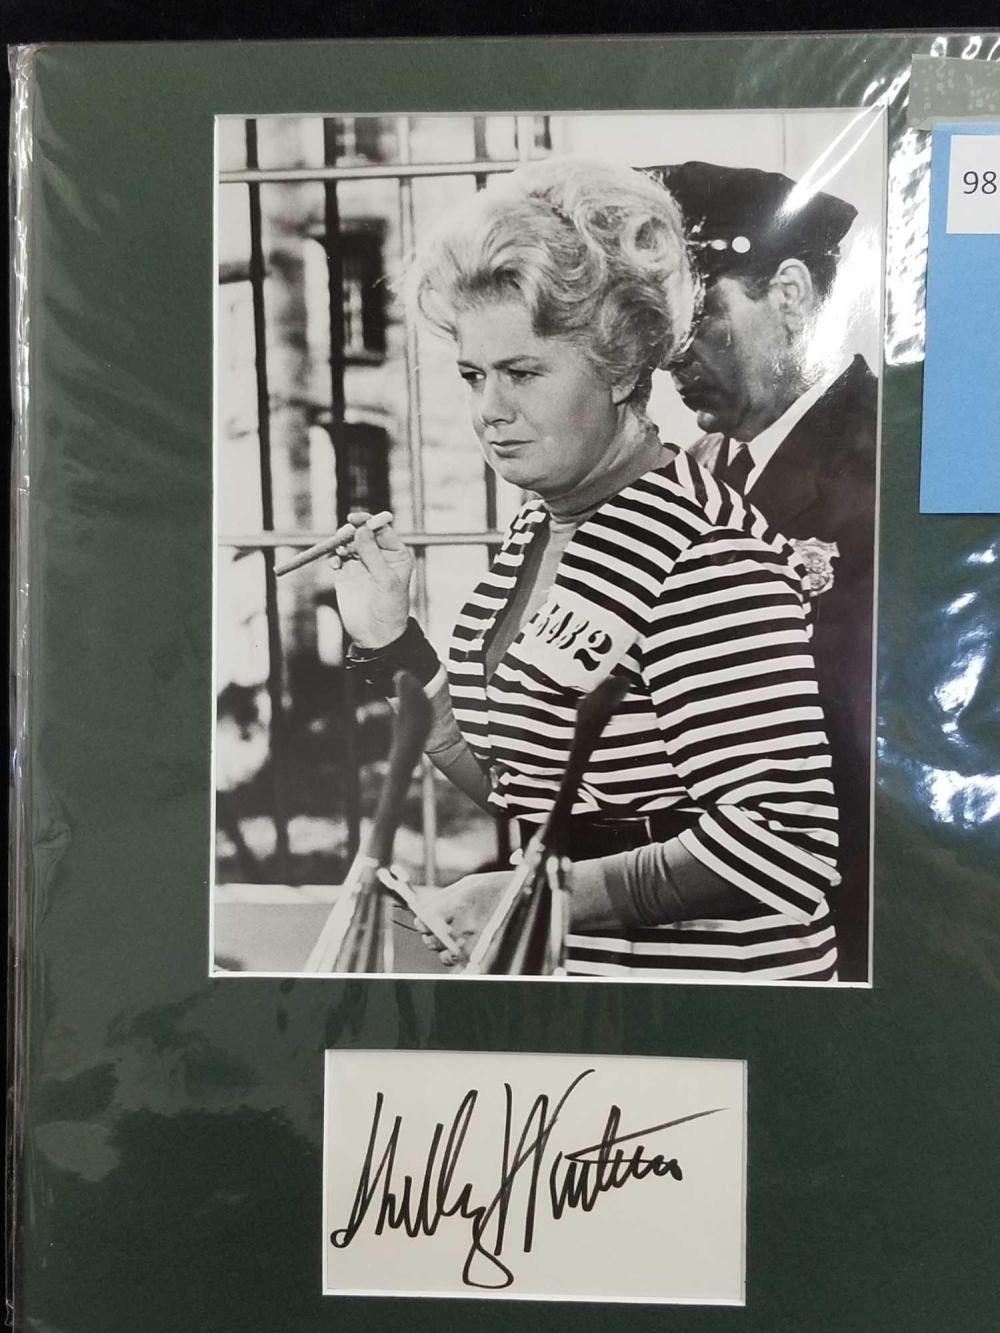 SHELLY WINTERS BLACK & WHITE PUBLICITY PHOTO & SIGNATURE CARD